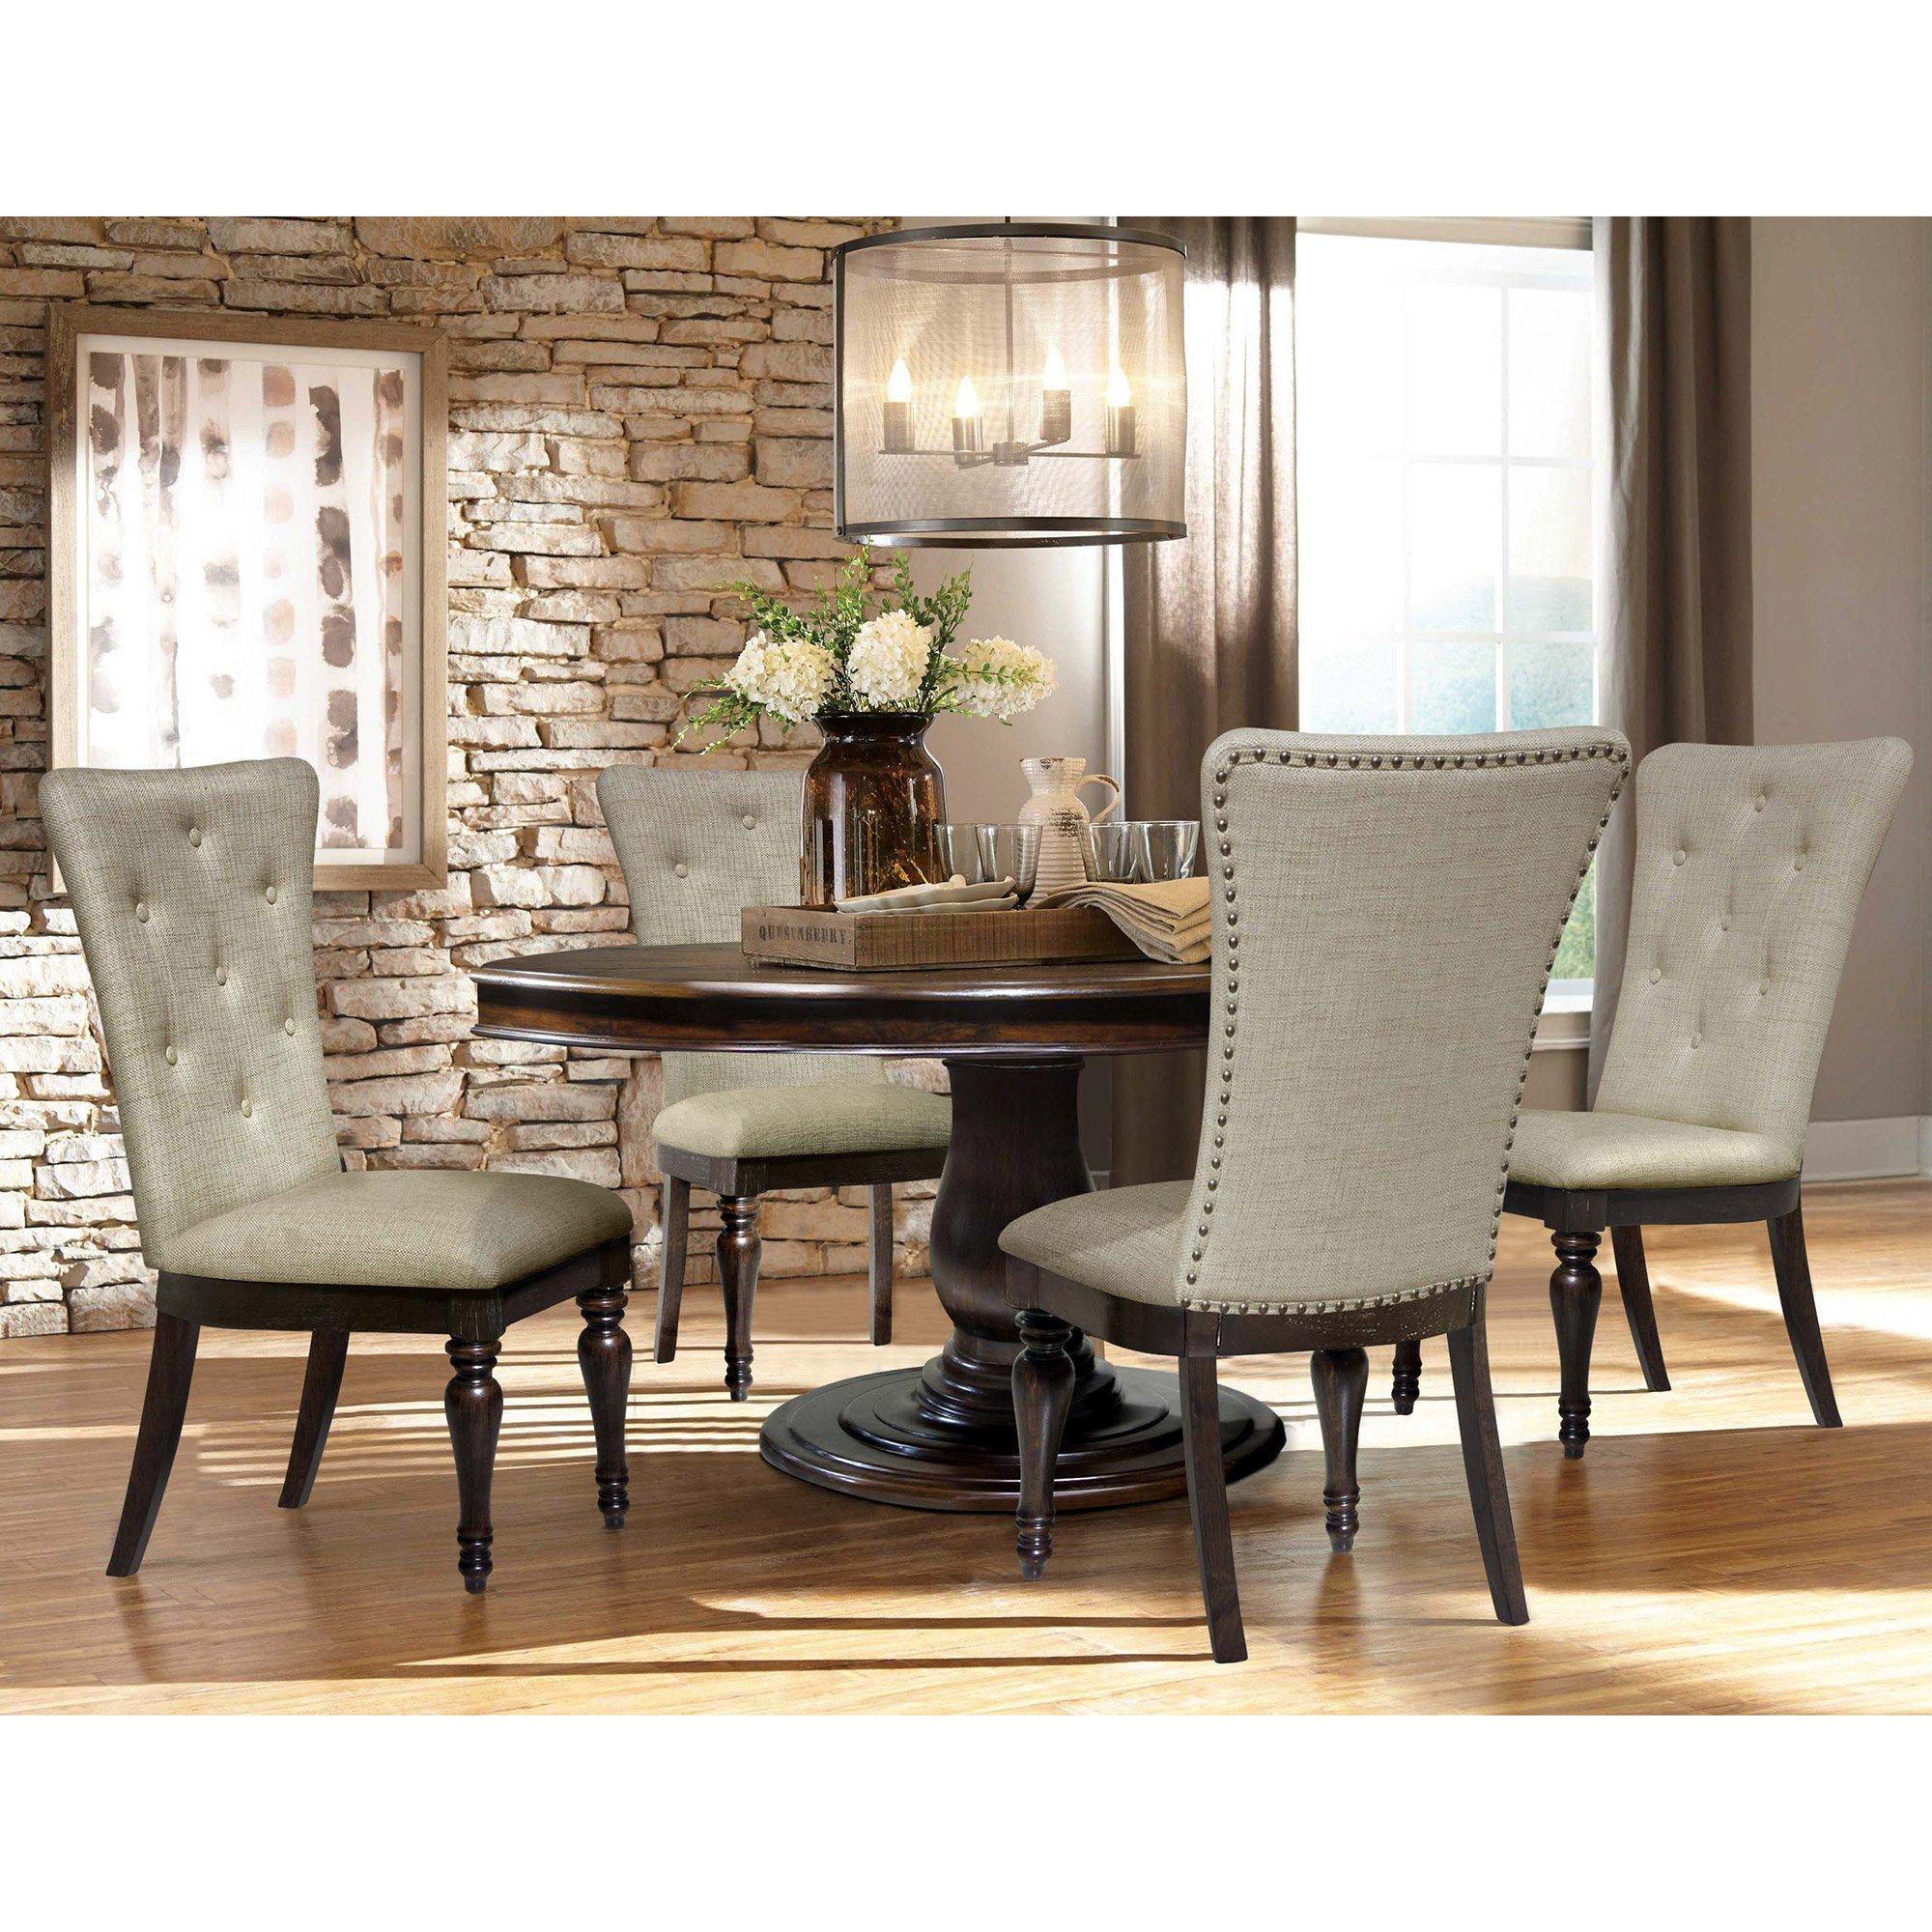 5 Piece Belmont Dining Room Collection, Aarons Dining Room Sets